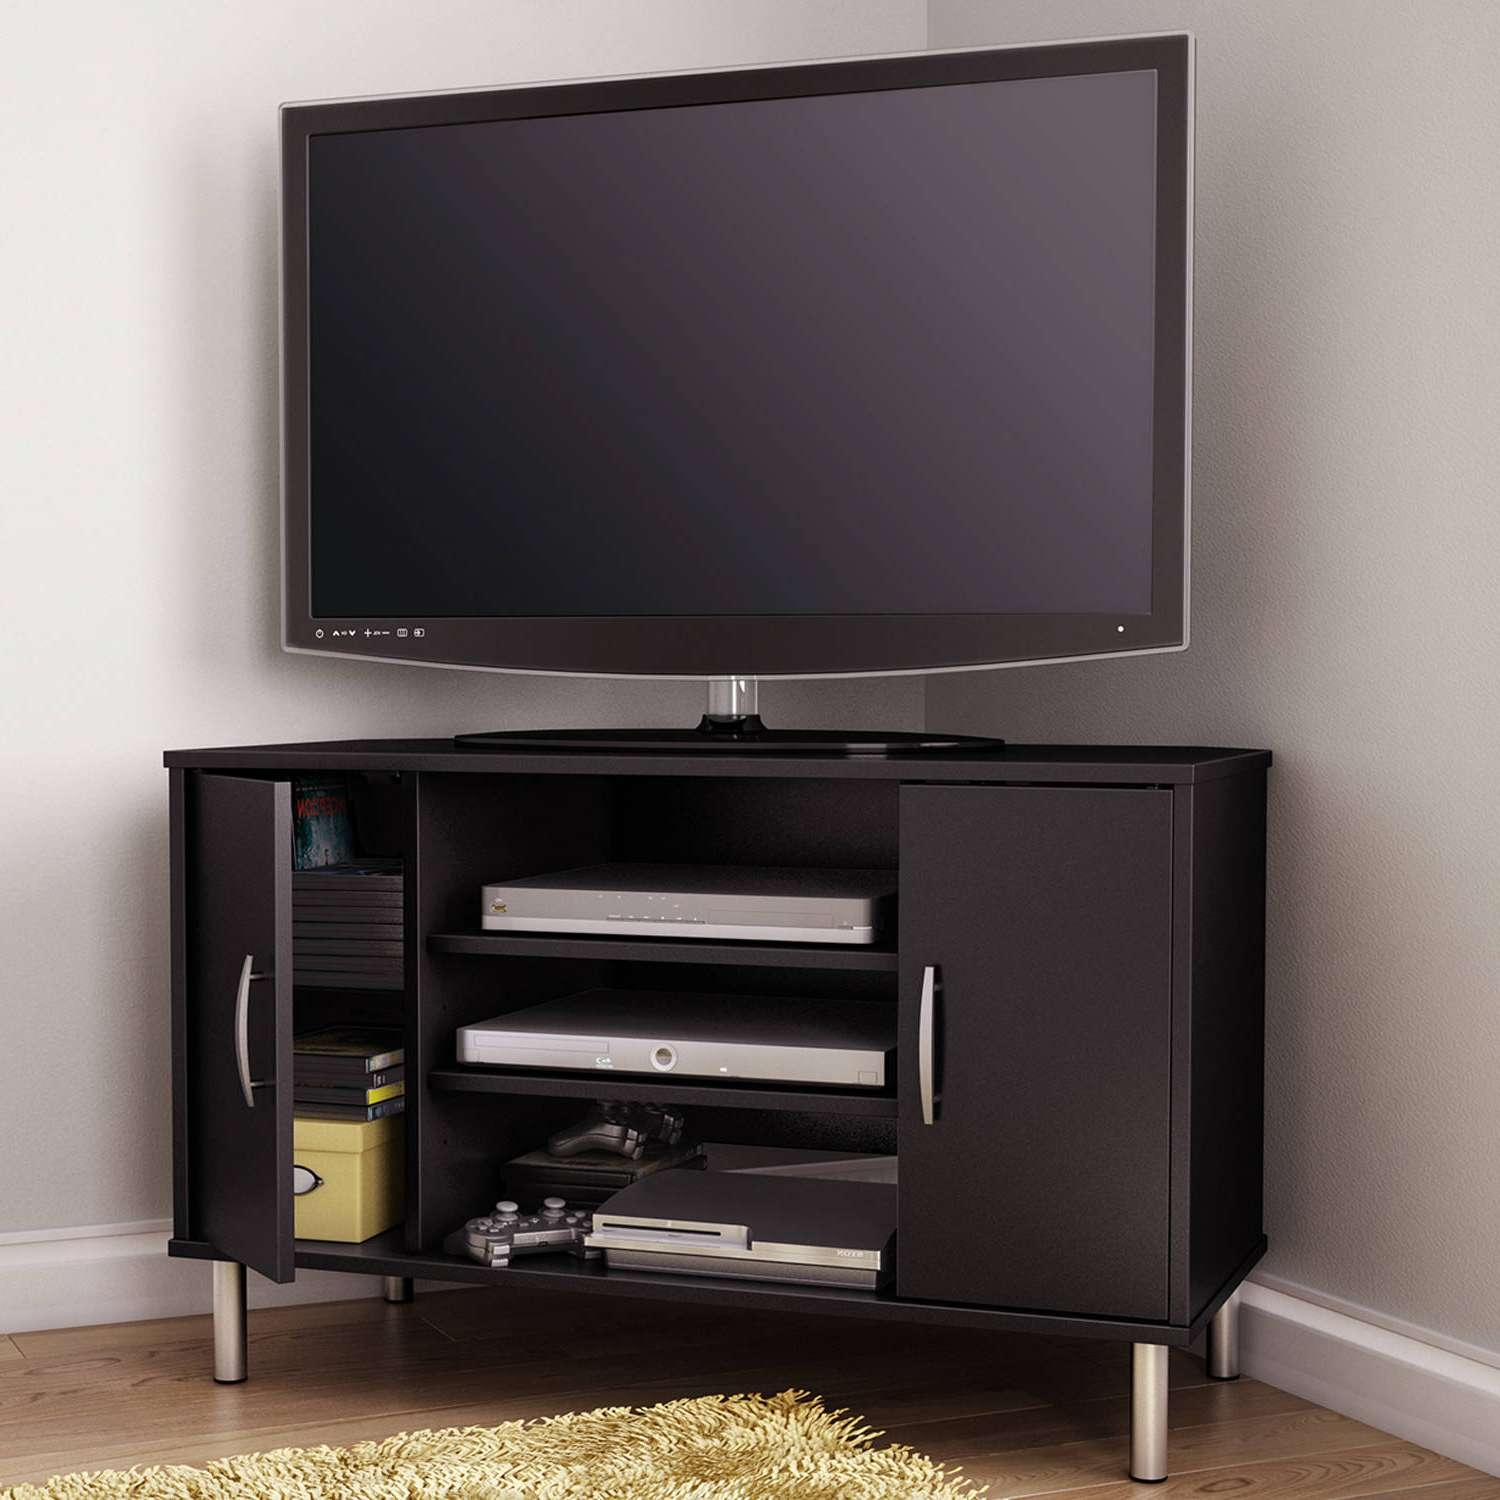 Tv : Tv Stands For Tube Tvs Intrigue Tv Stands For Tube Tvs 36 Pertaining To Tv Stands For Tube Tvs (View 10 of 15)